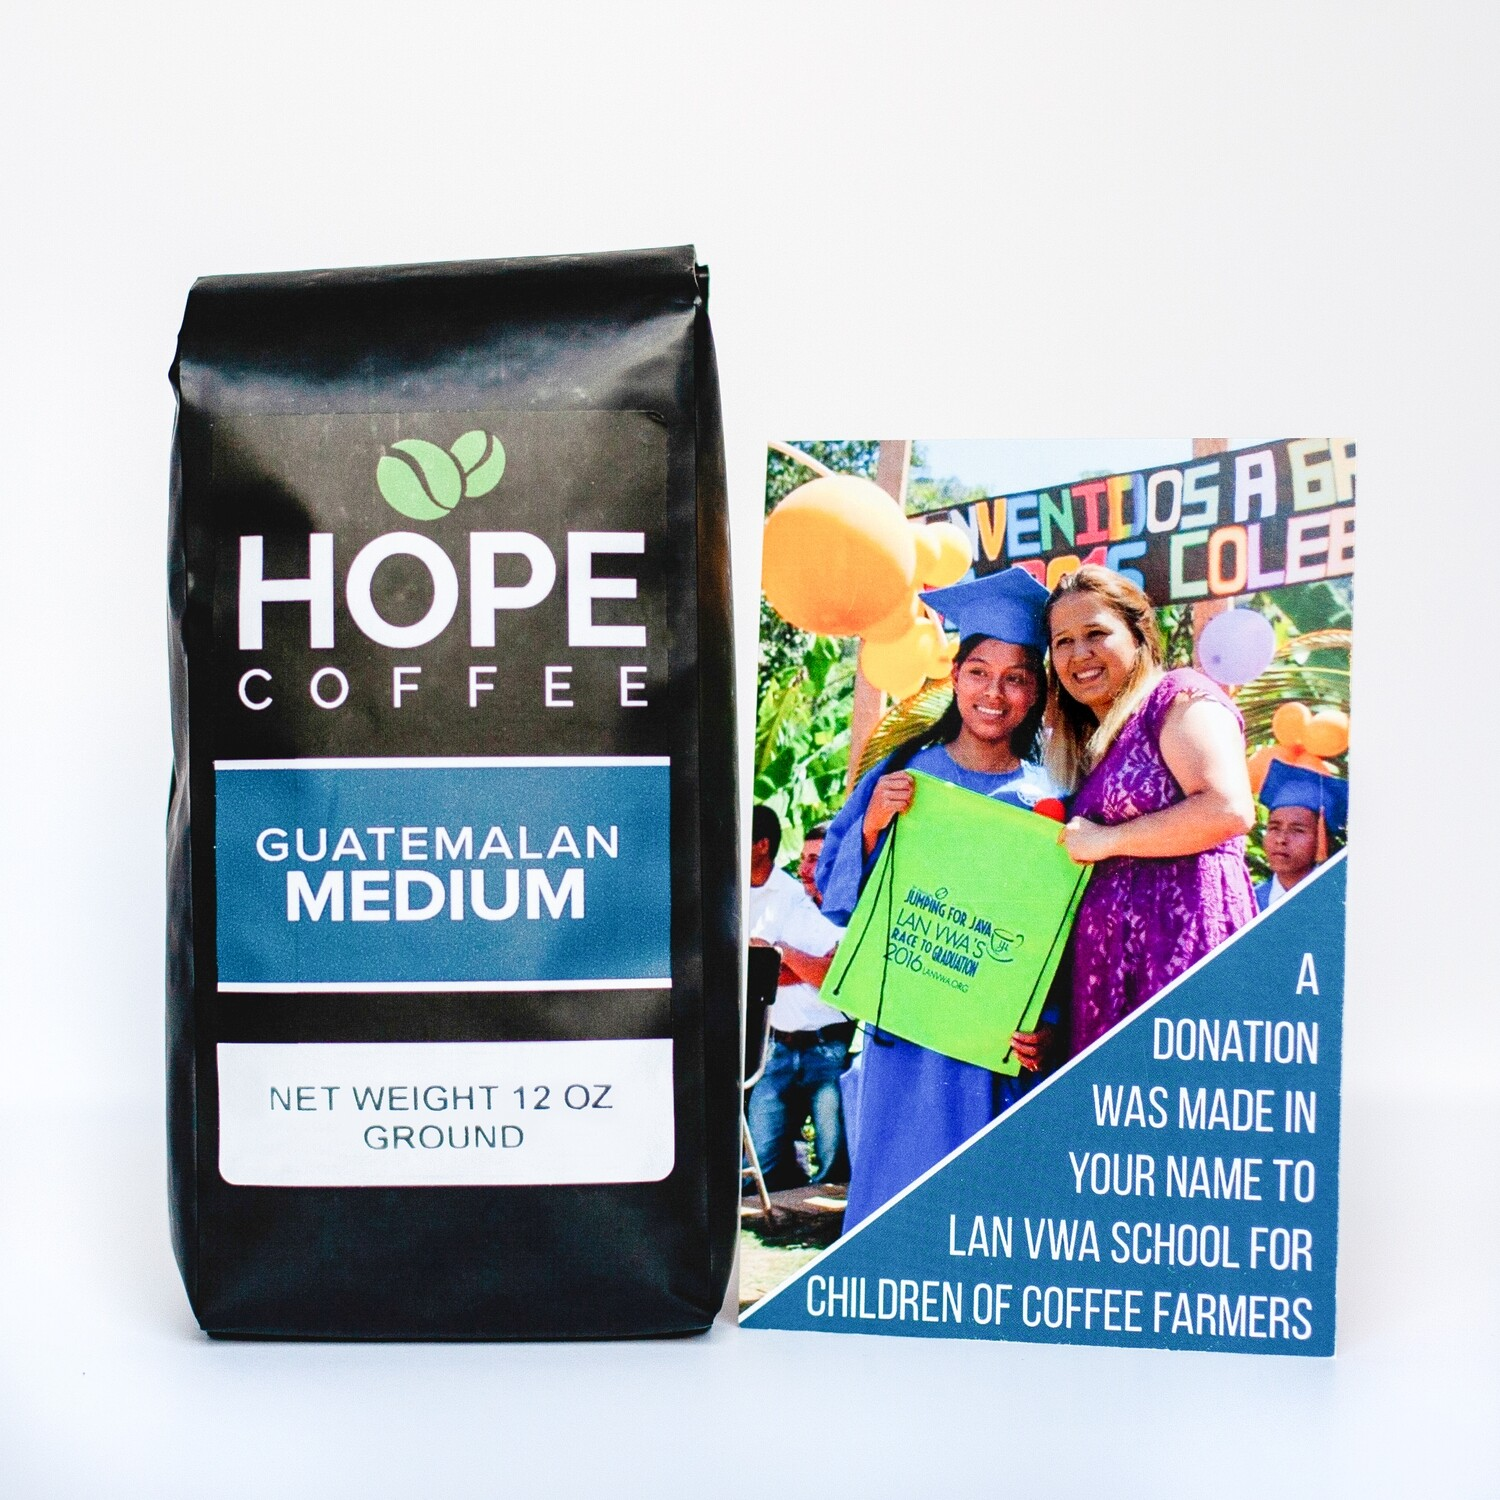 Lan Vwa Gift Pack - 12 oz bag of Guatemalan Coffee and $5 Donation to Lan Vwa